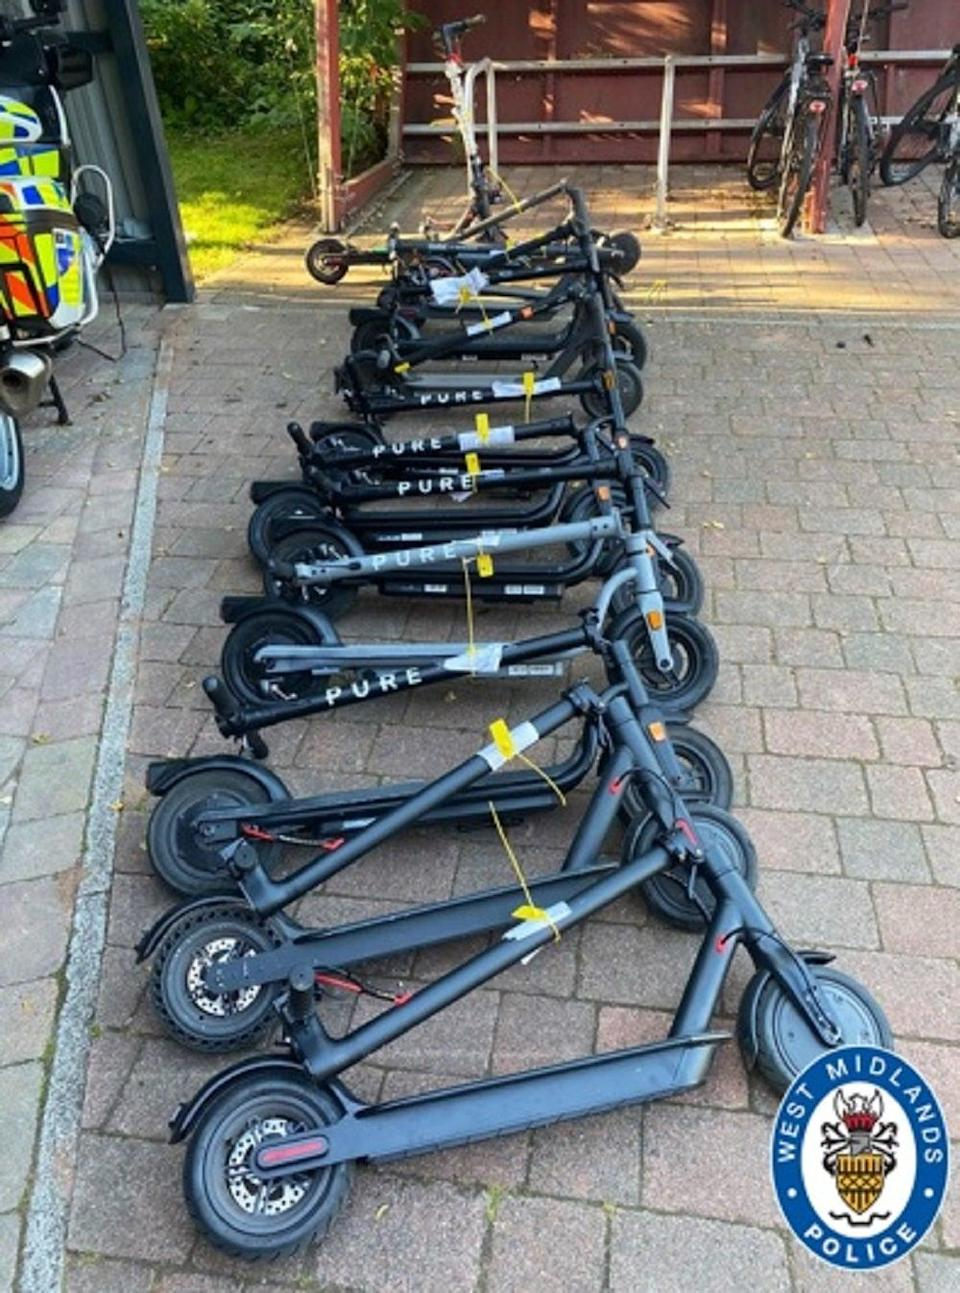 E-scooters seized by West Midlands Police (West Midlands Police/PA)